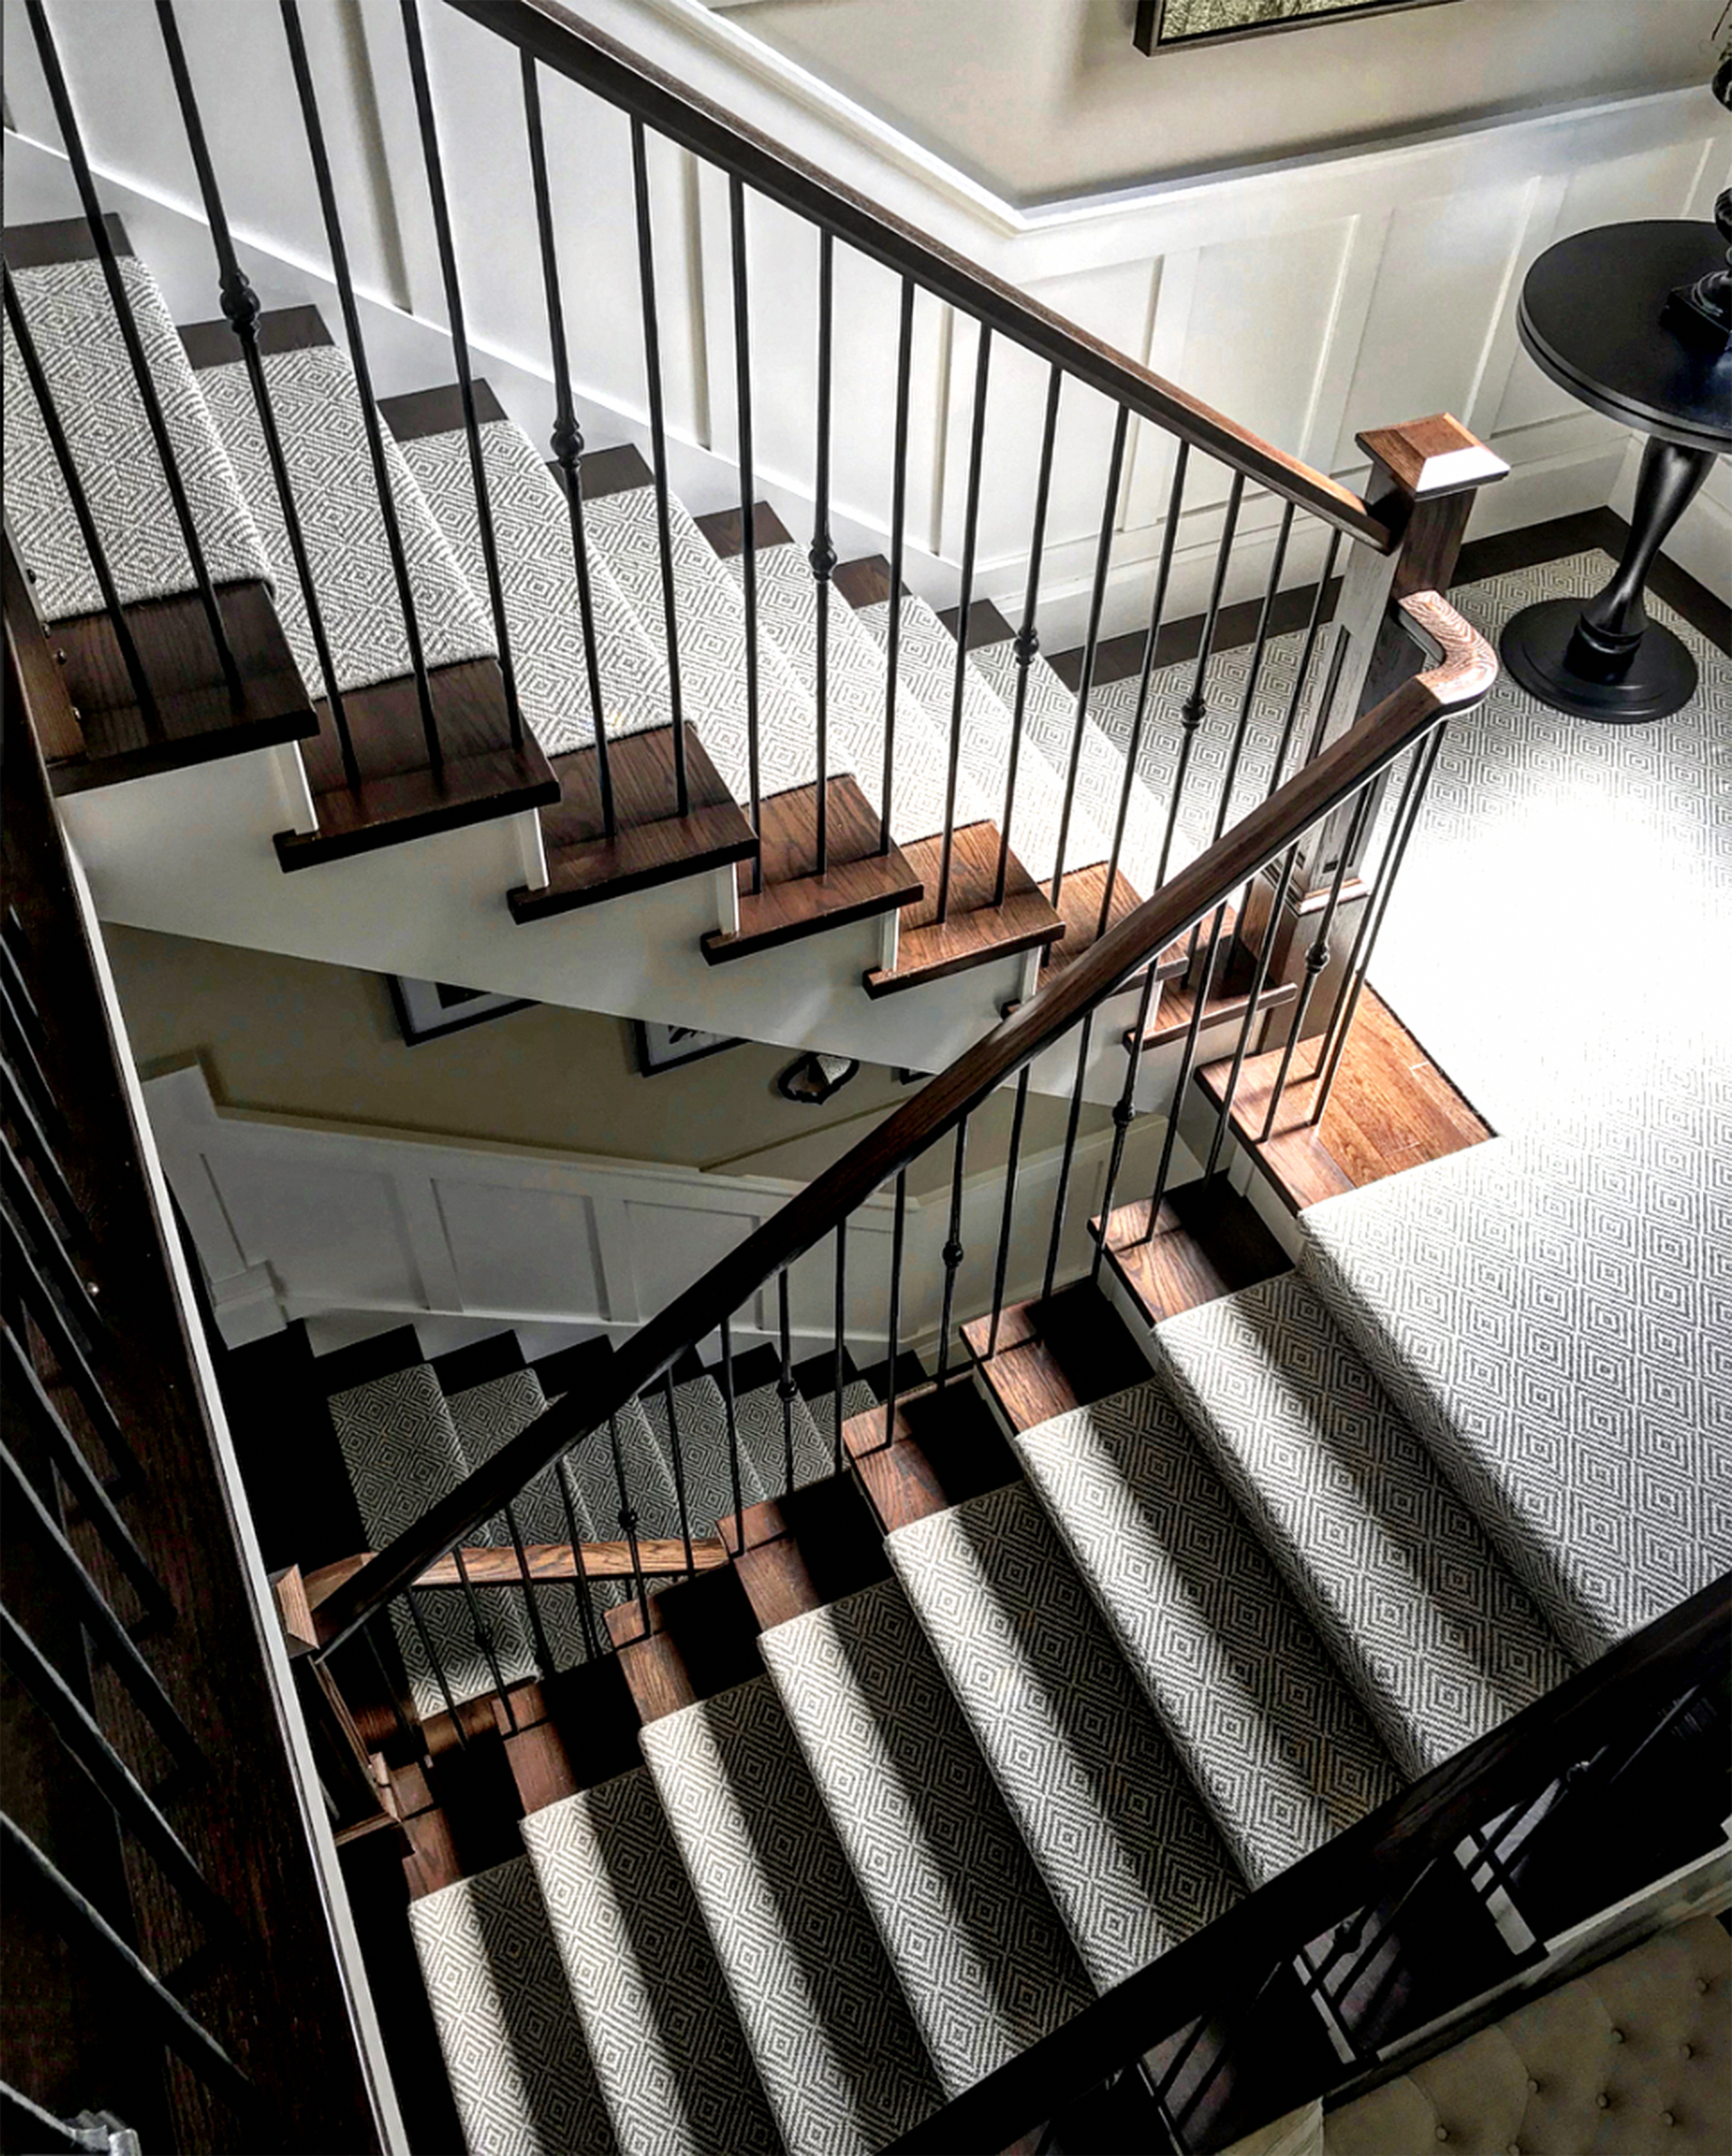 Carpet Runners For Stairs Lowes Carpetrunnersgianttiger House   Carpet Runners For Stairs Lowes   Patterned Carpet   Stainmaster   Berber Carpet   Treads Lowes   Wooden Stairs